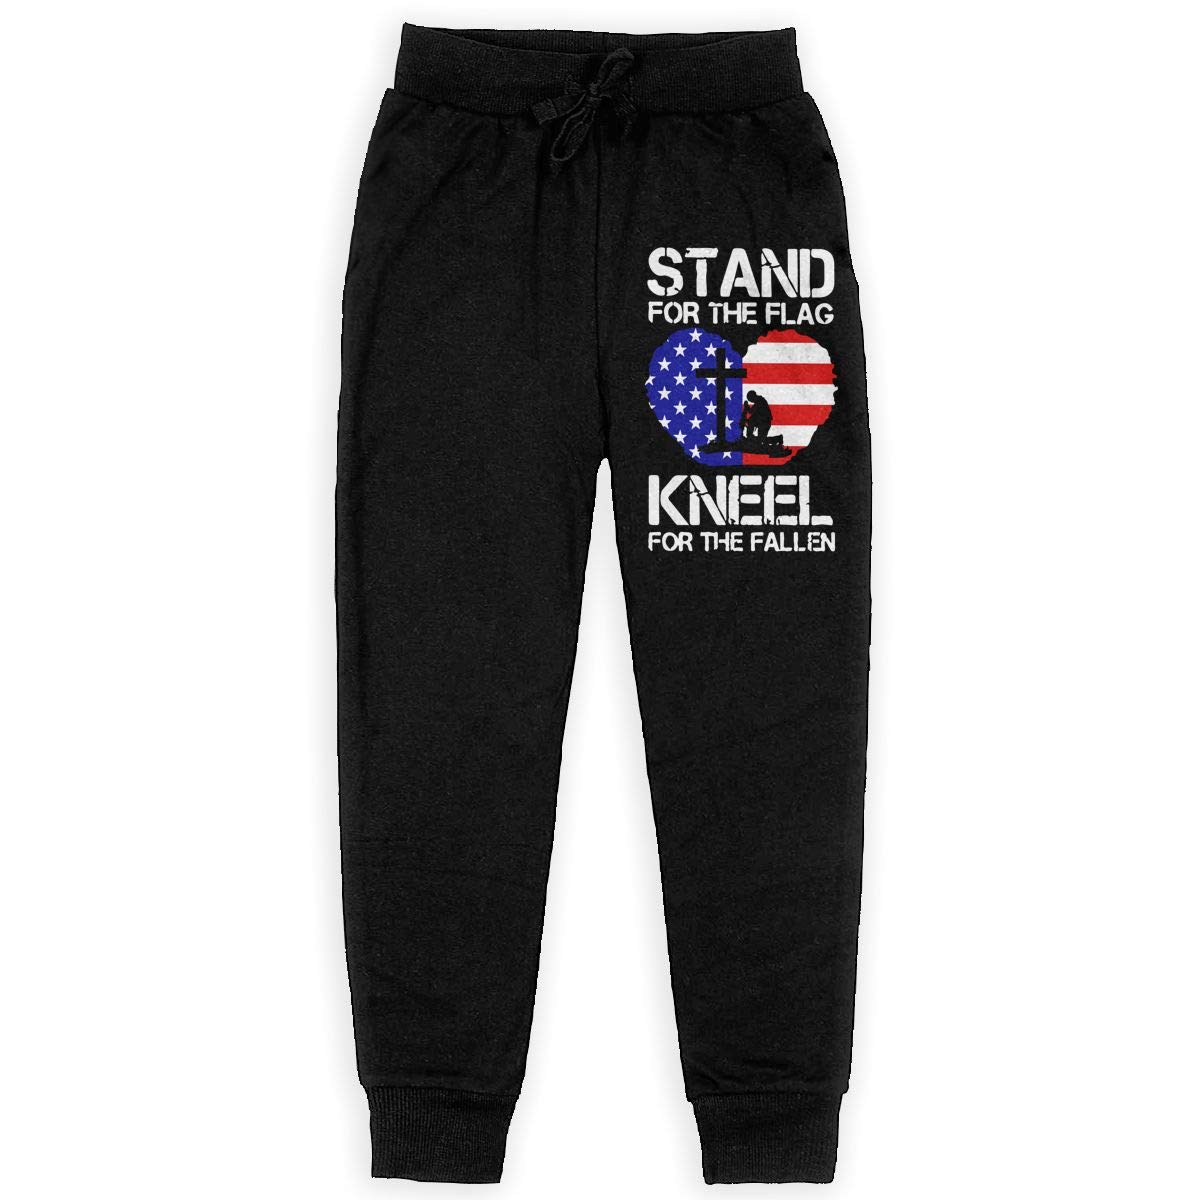 Stand for The Flag Teenager Trousers Girls for Teenager Girls Kneel for The Fallen Soft//Cozy Sweatpants